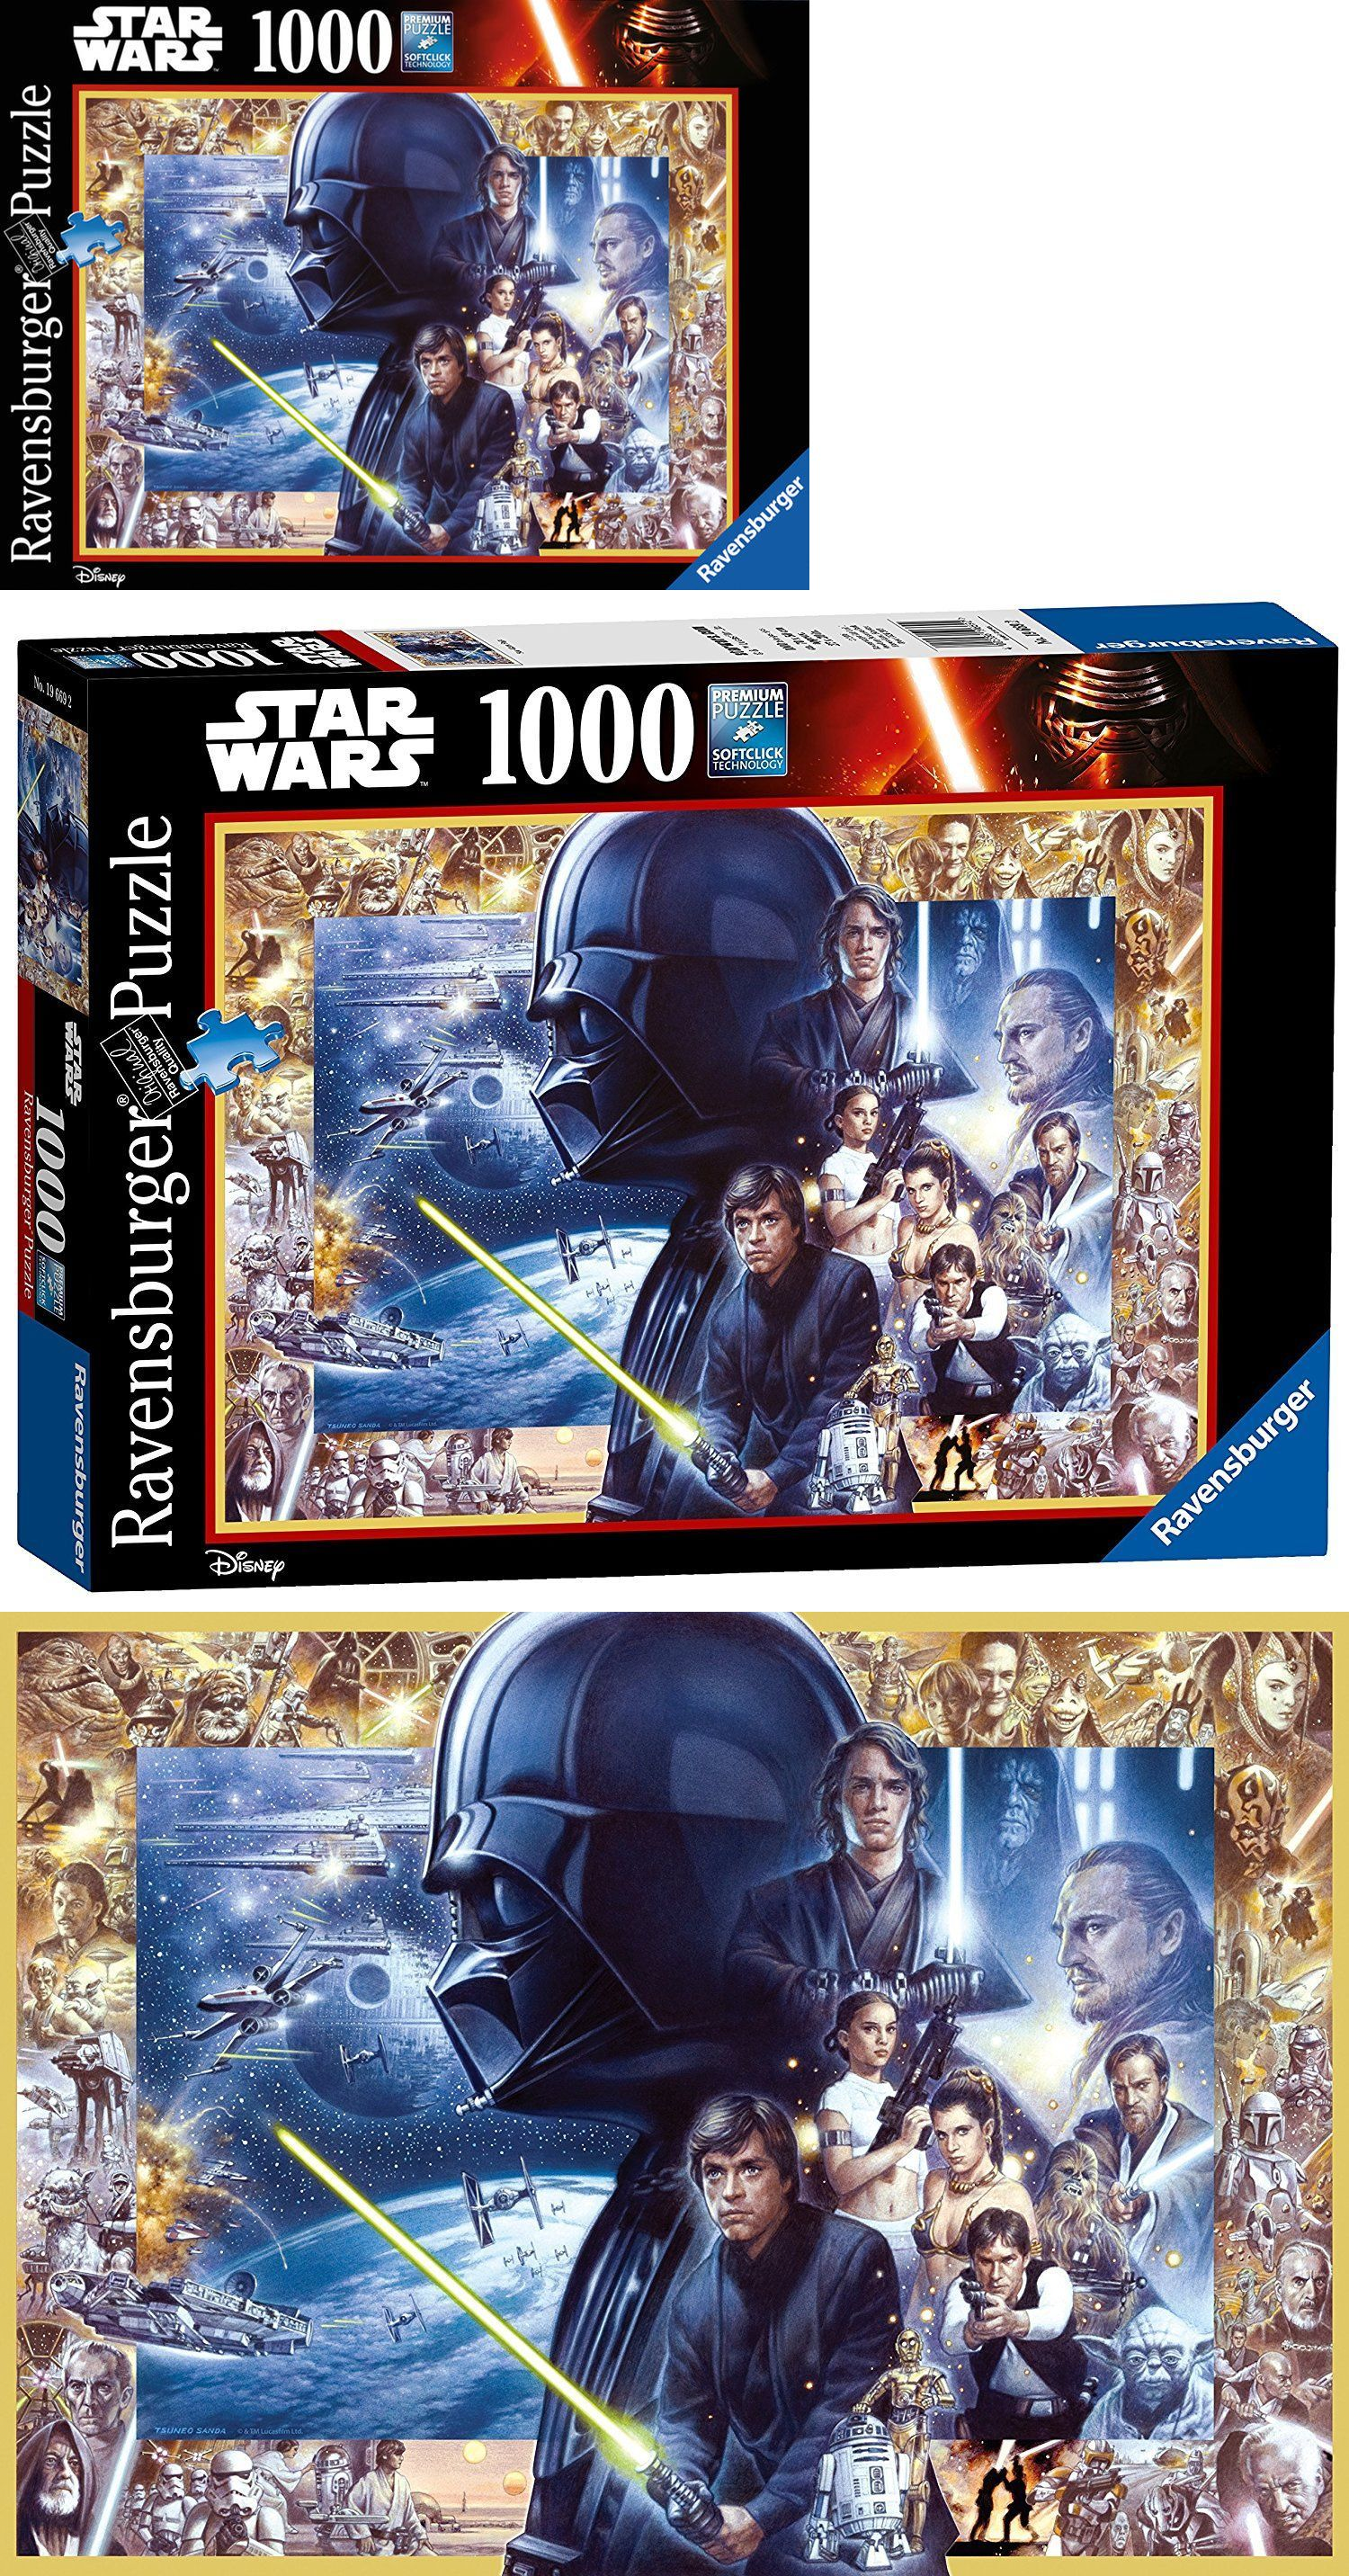 Jigsaw 19183 Star Wars Saga Disney 1000